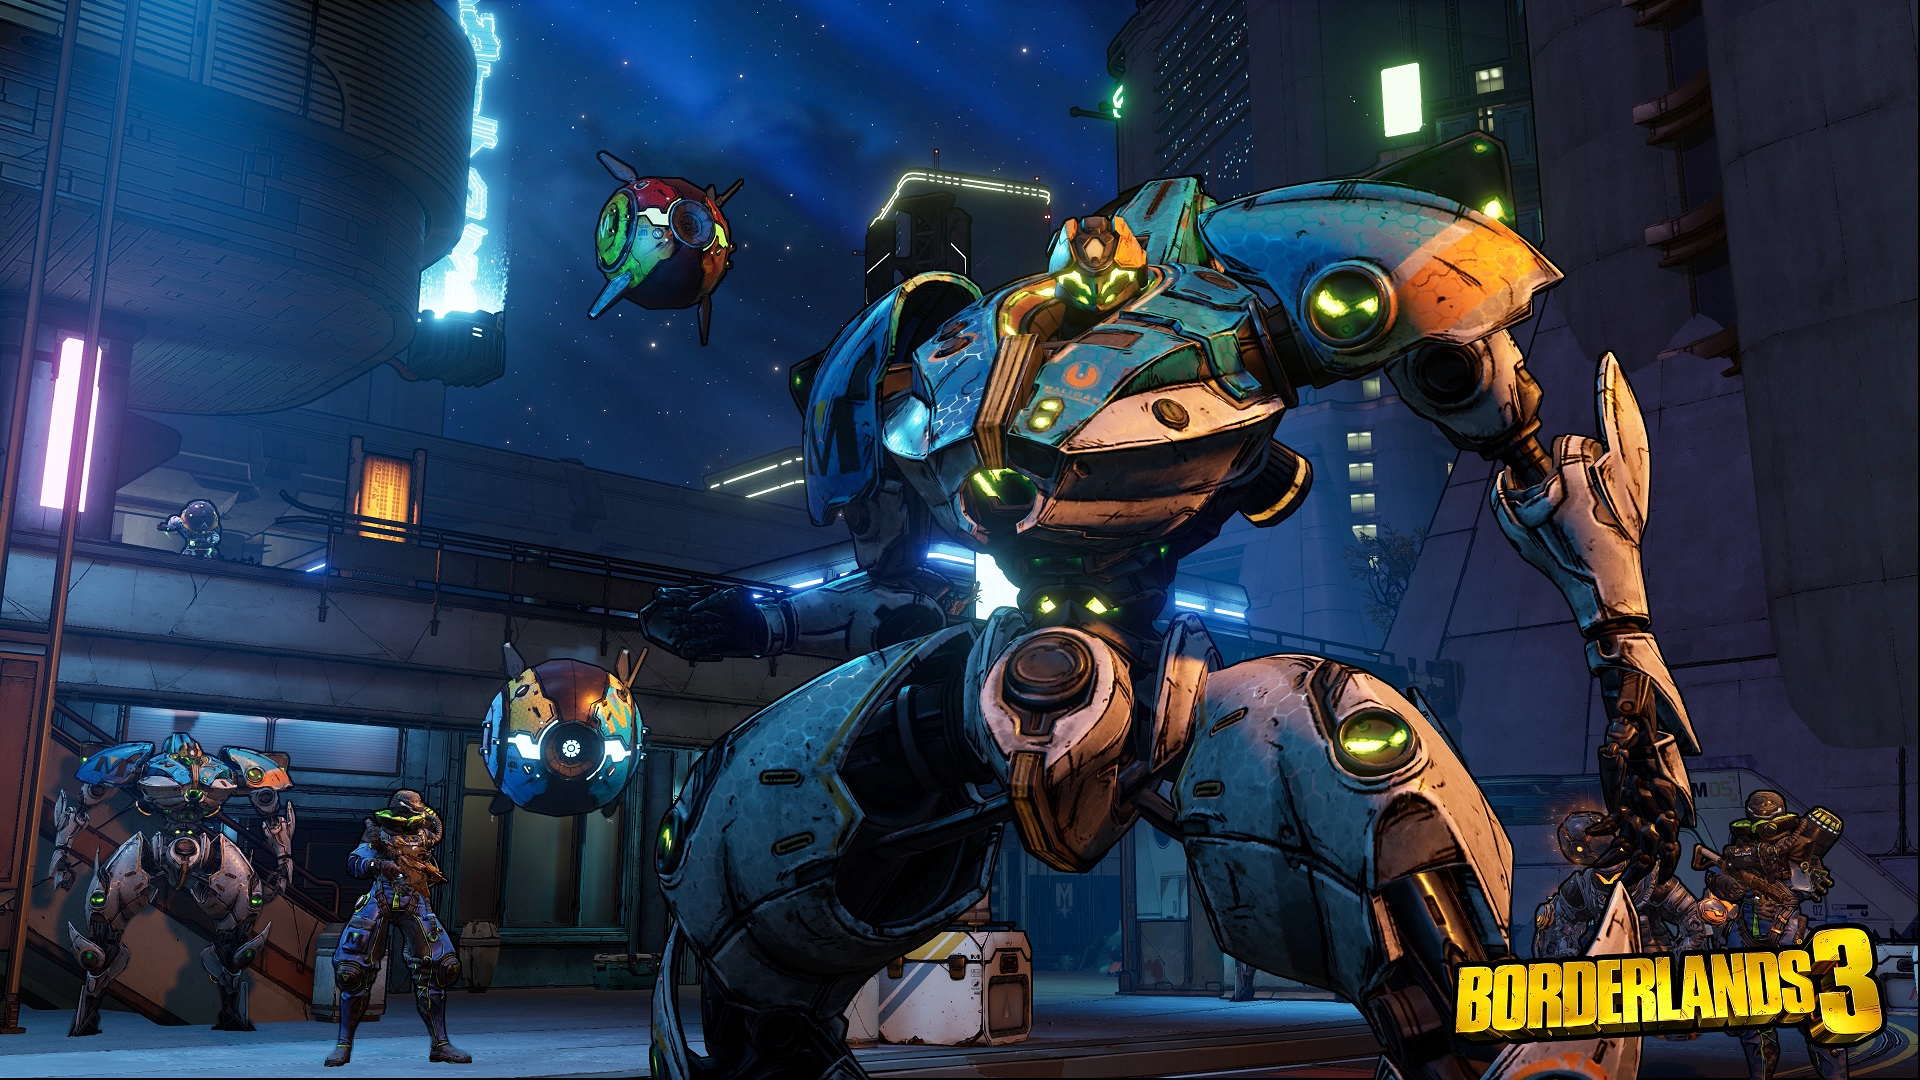 Borderlands 3's dueling system is more akin to classic free-for-all deathmatch screenshot